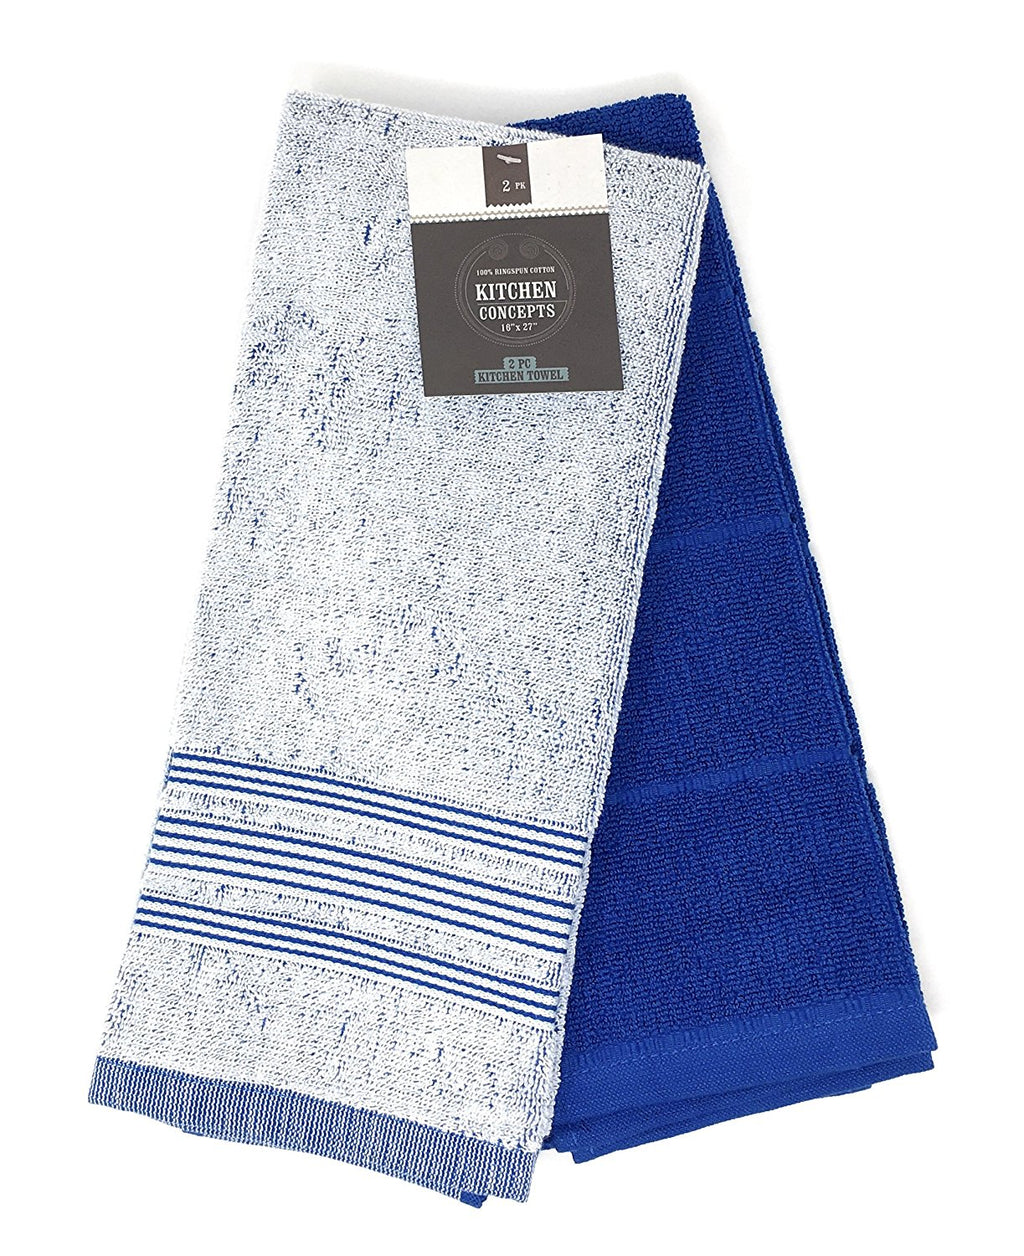 Kitchen Concepts Chambray 2 Piece Kitchen Towel Set (Blue, 1 Set)